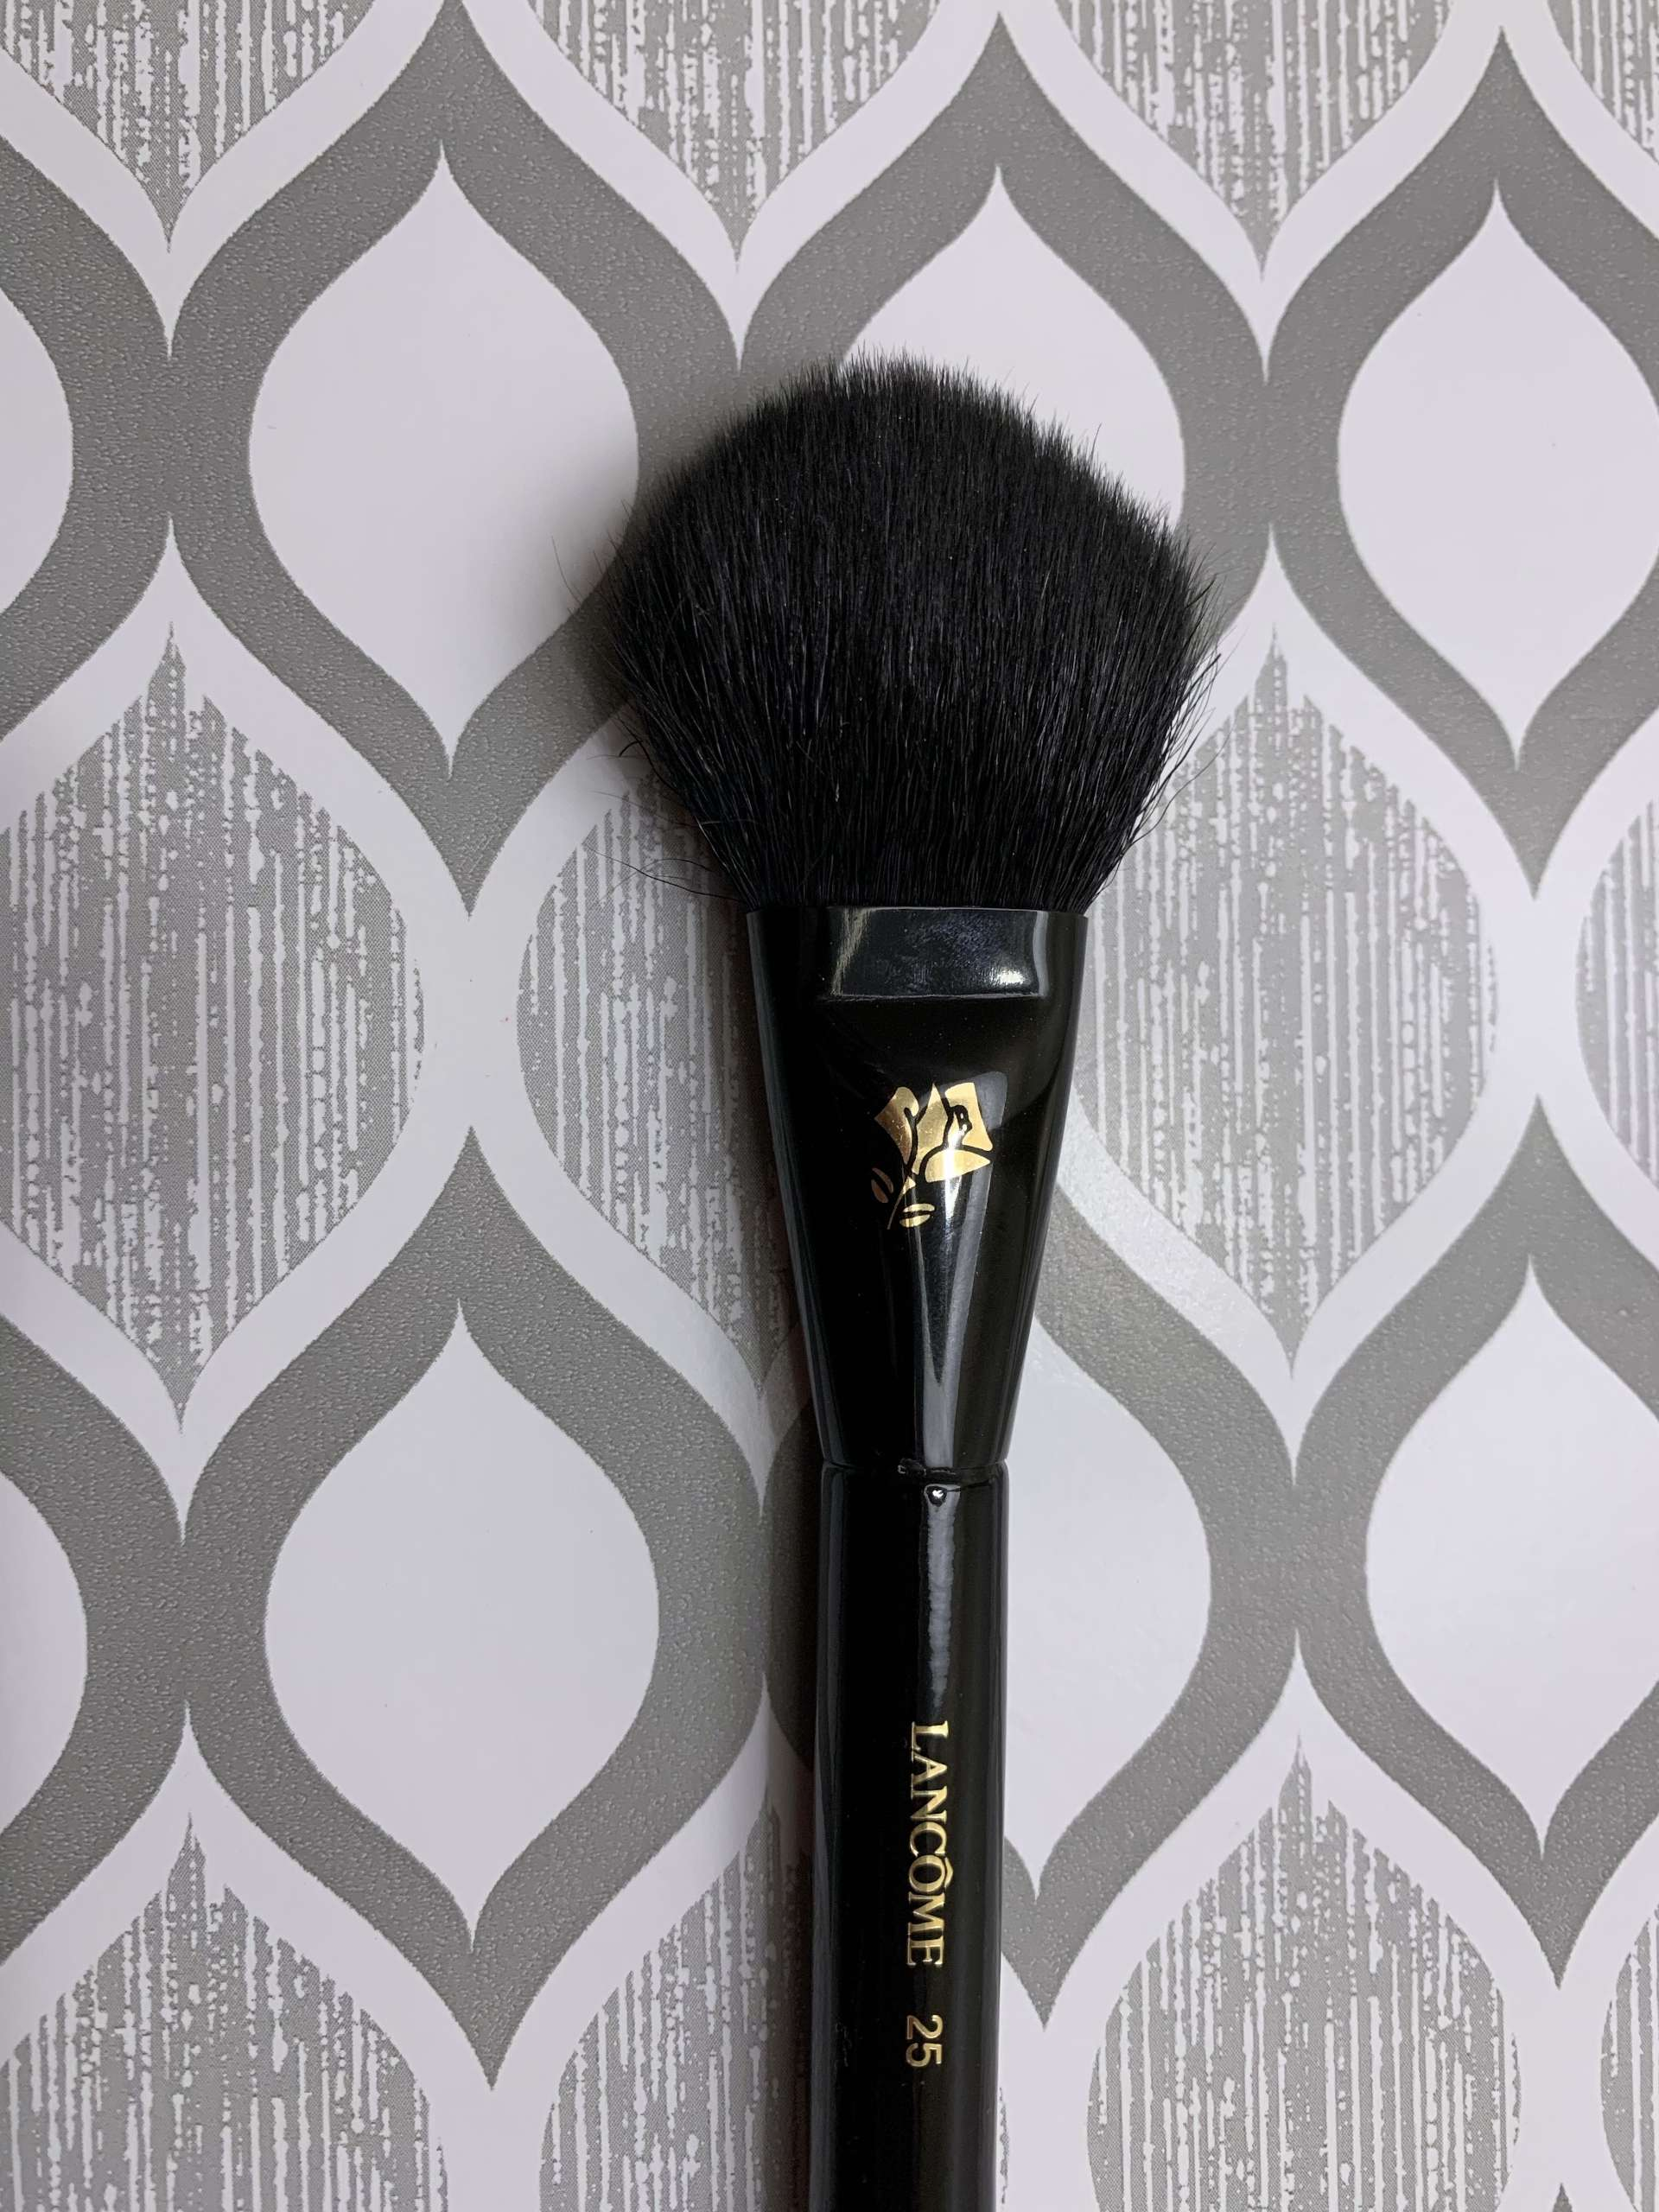 Lancome cheek and contour brush 25 review